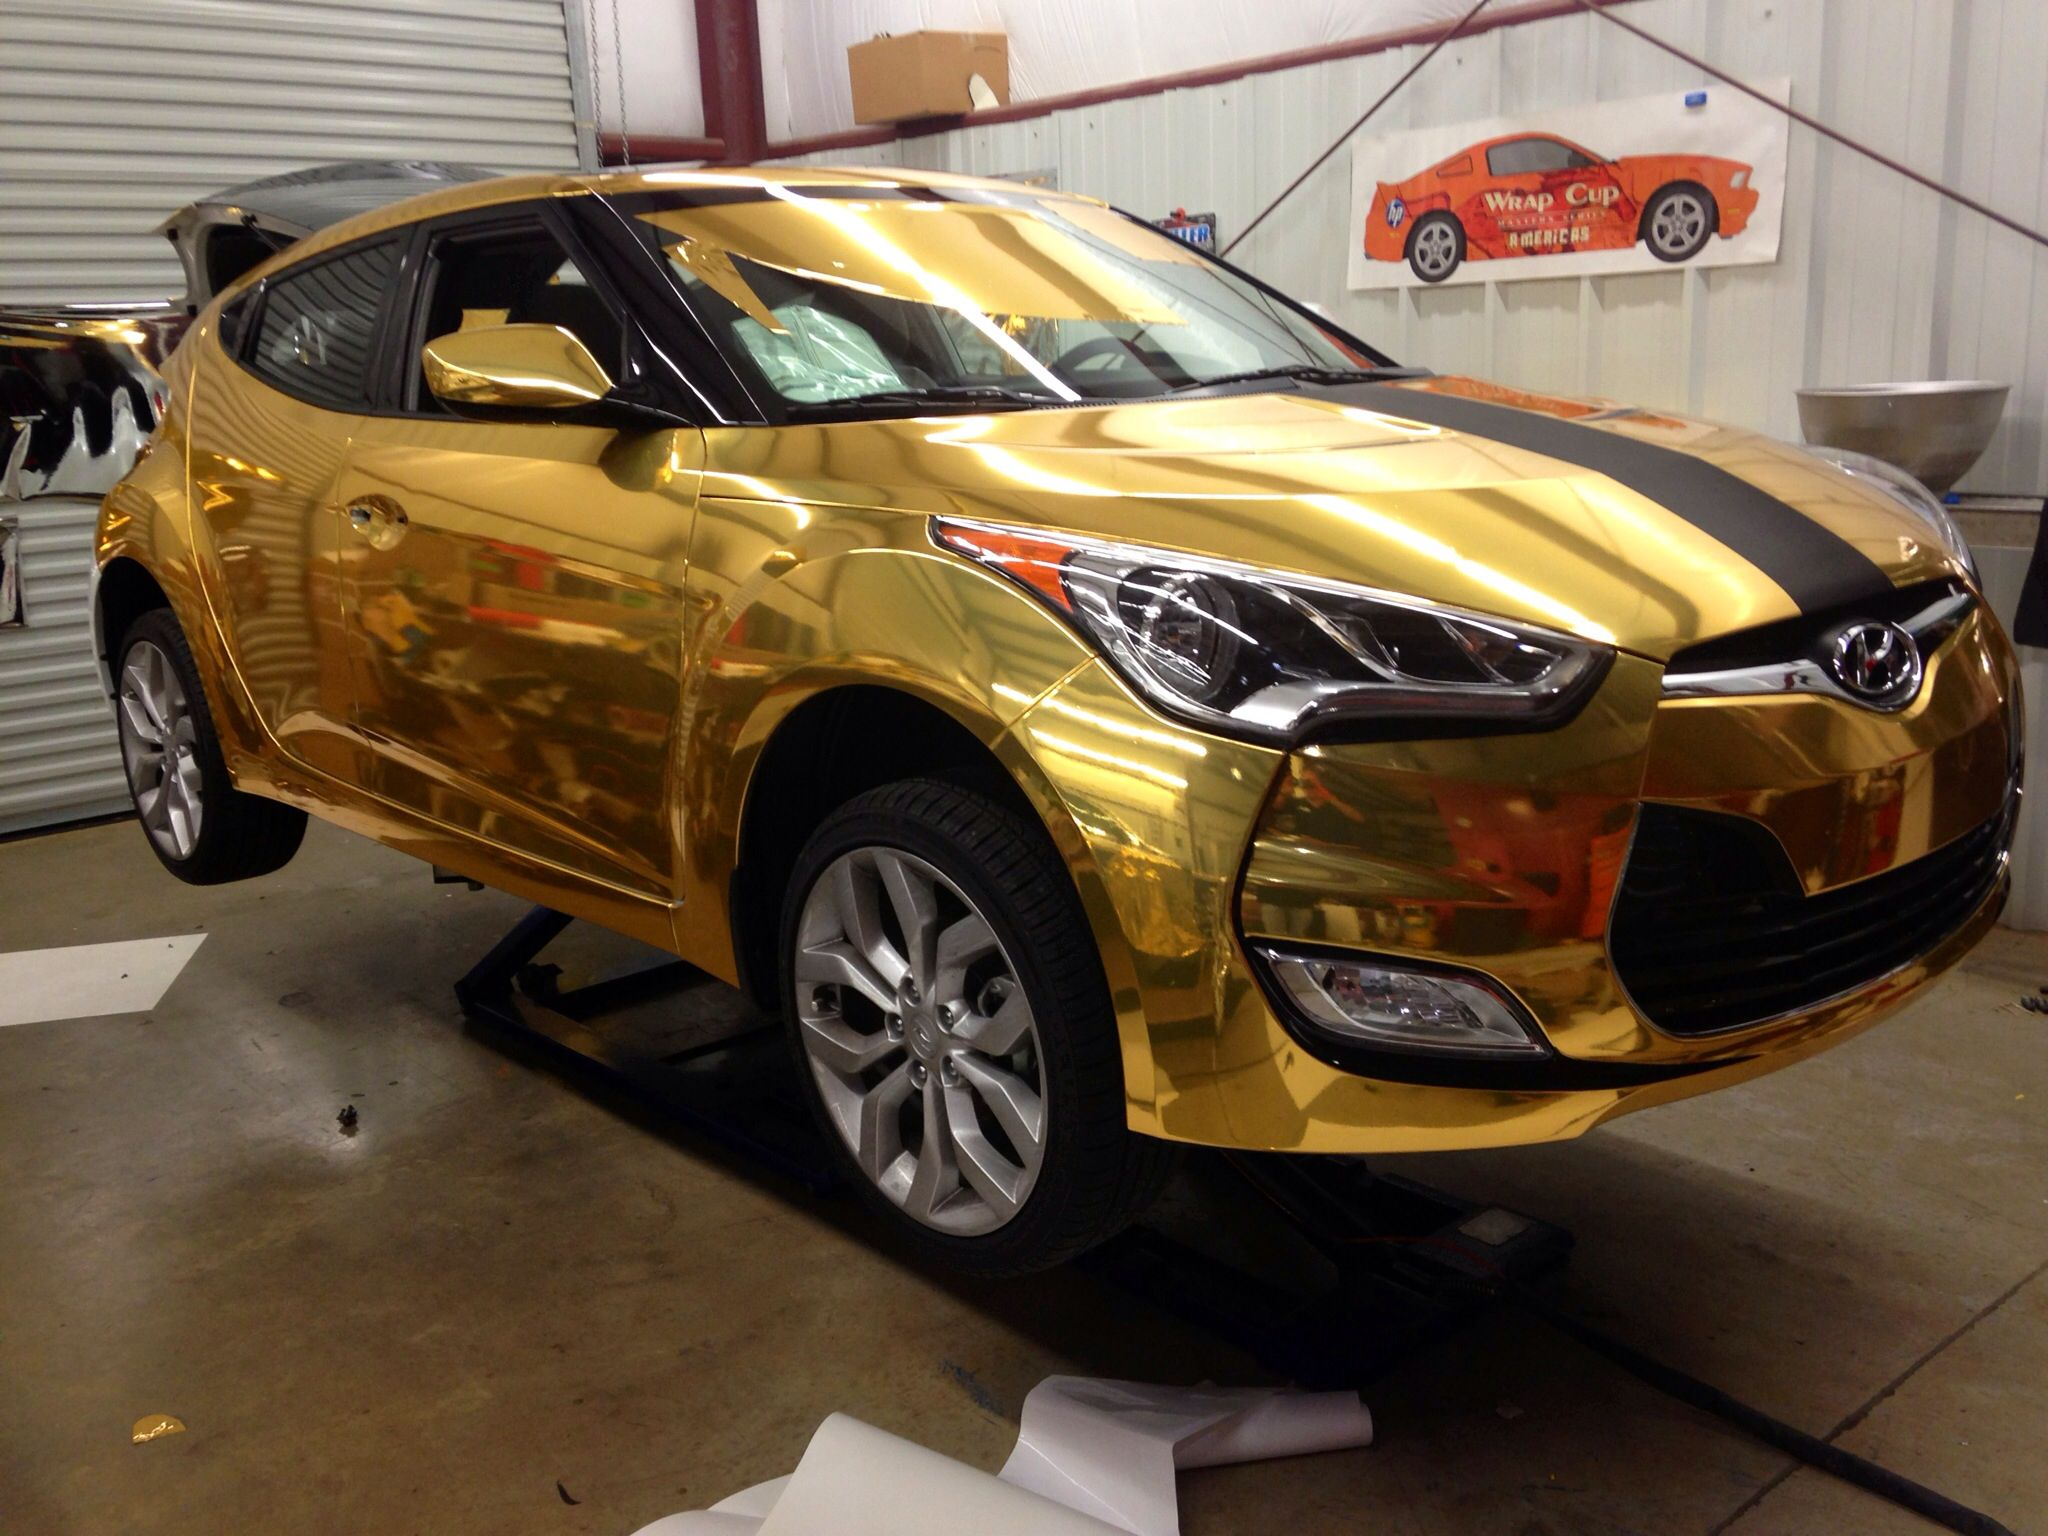 Hyundai Veloster Accessories 1000 Images About Car Accessories On Pinterest Two Tones